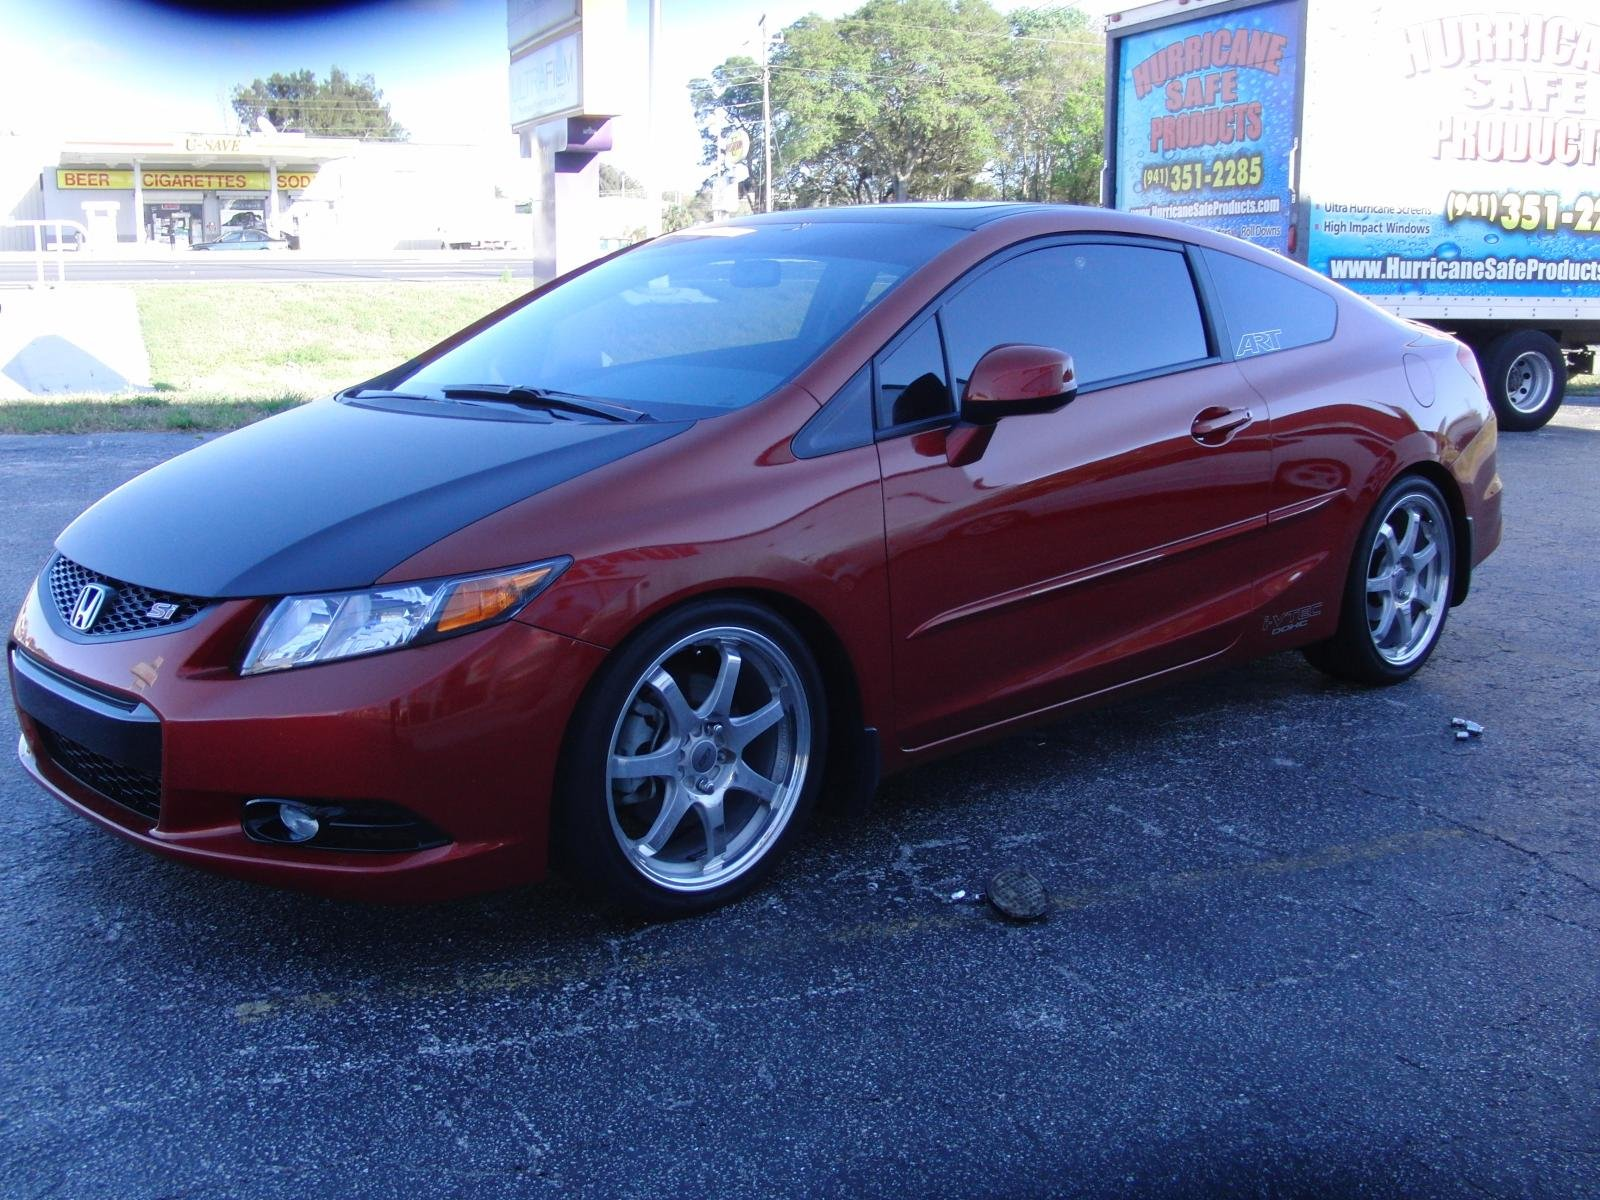 Mugen Gp 18 Wheels Will Fit 2012 Civic Si Coupe